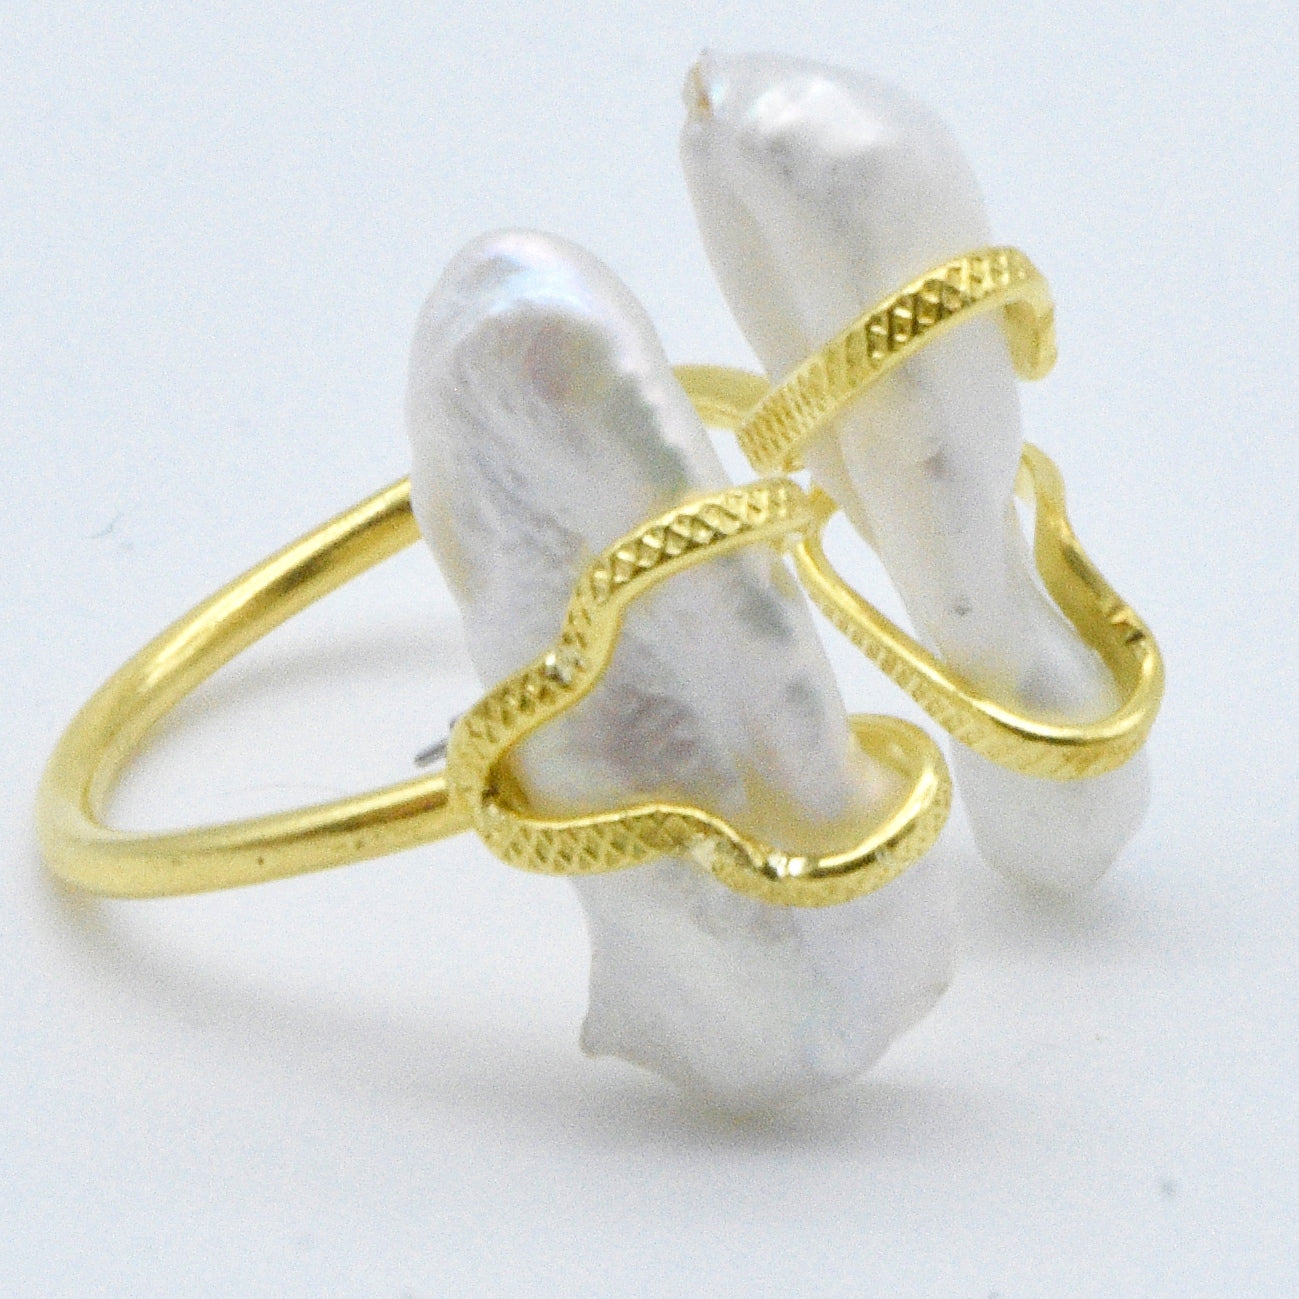 Aylas Baroque Pearl gold ring - Gold plated semi-precious gemstone - Handmade in Ottoman Style